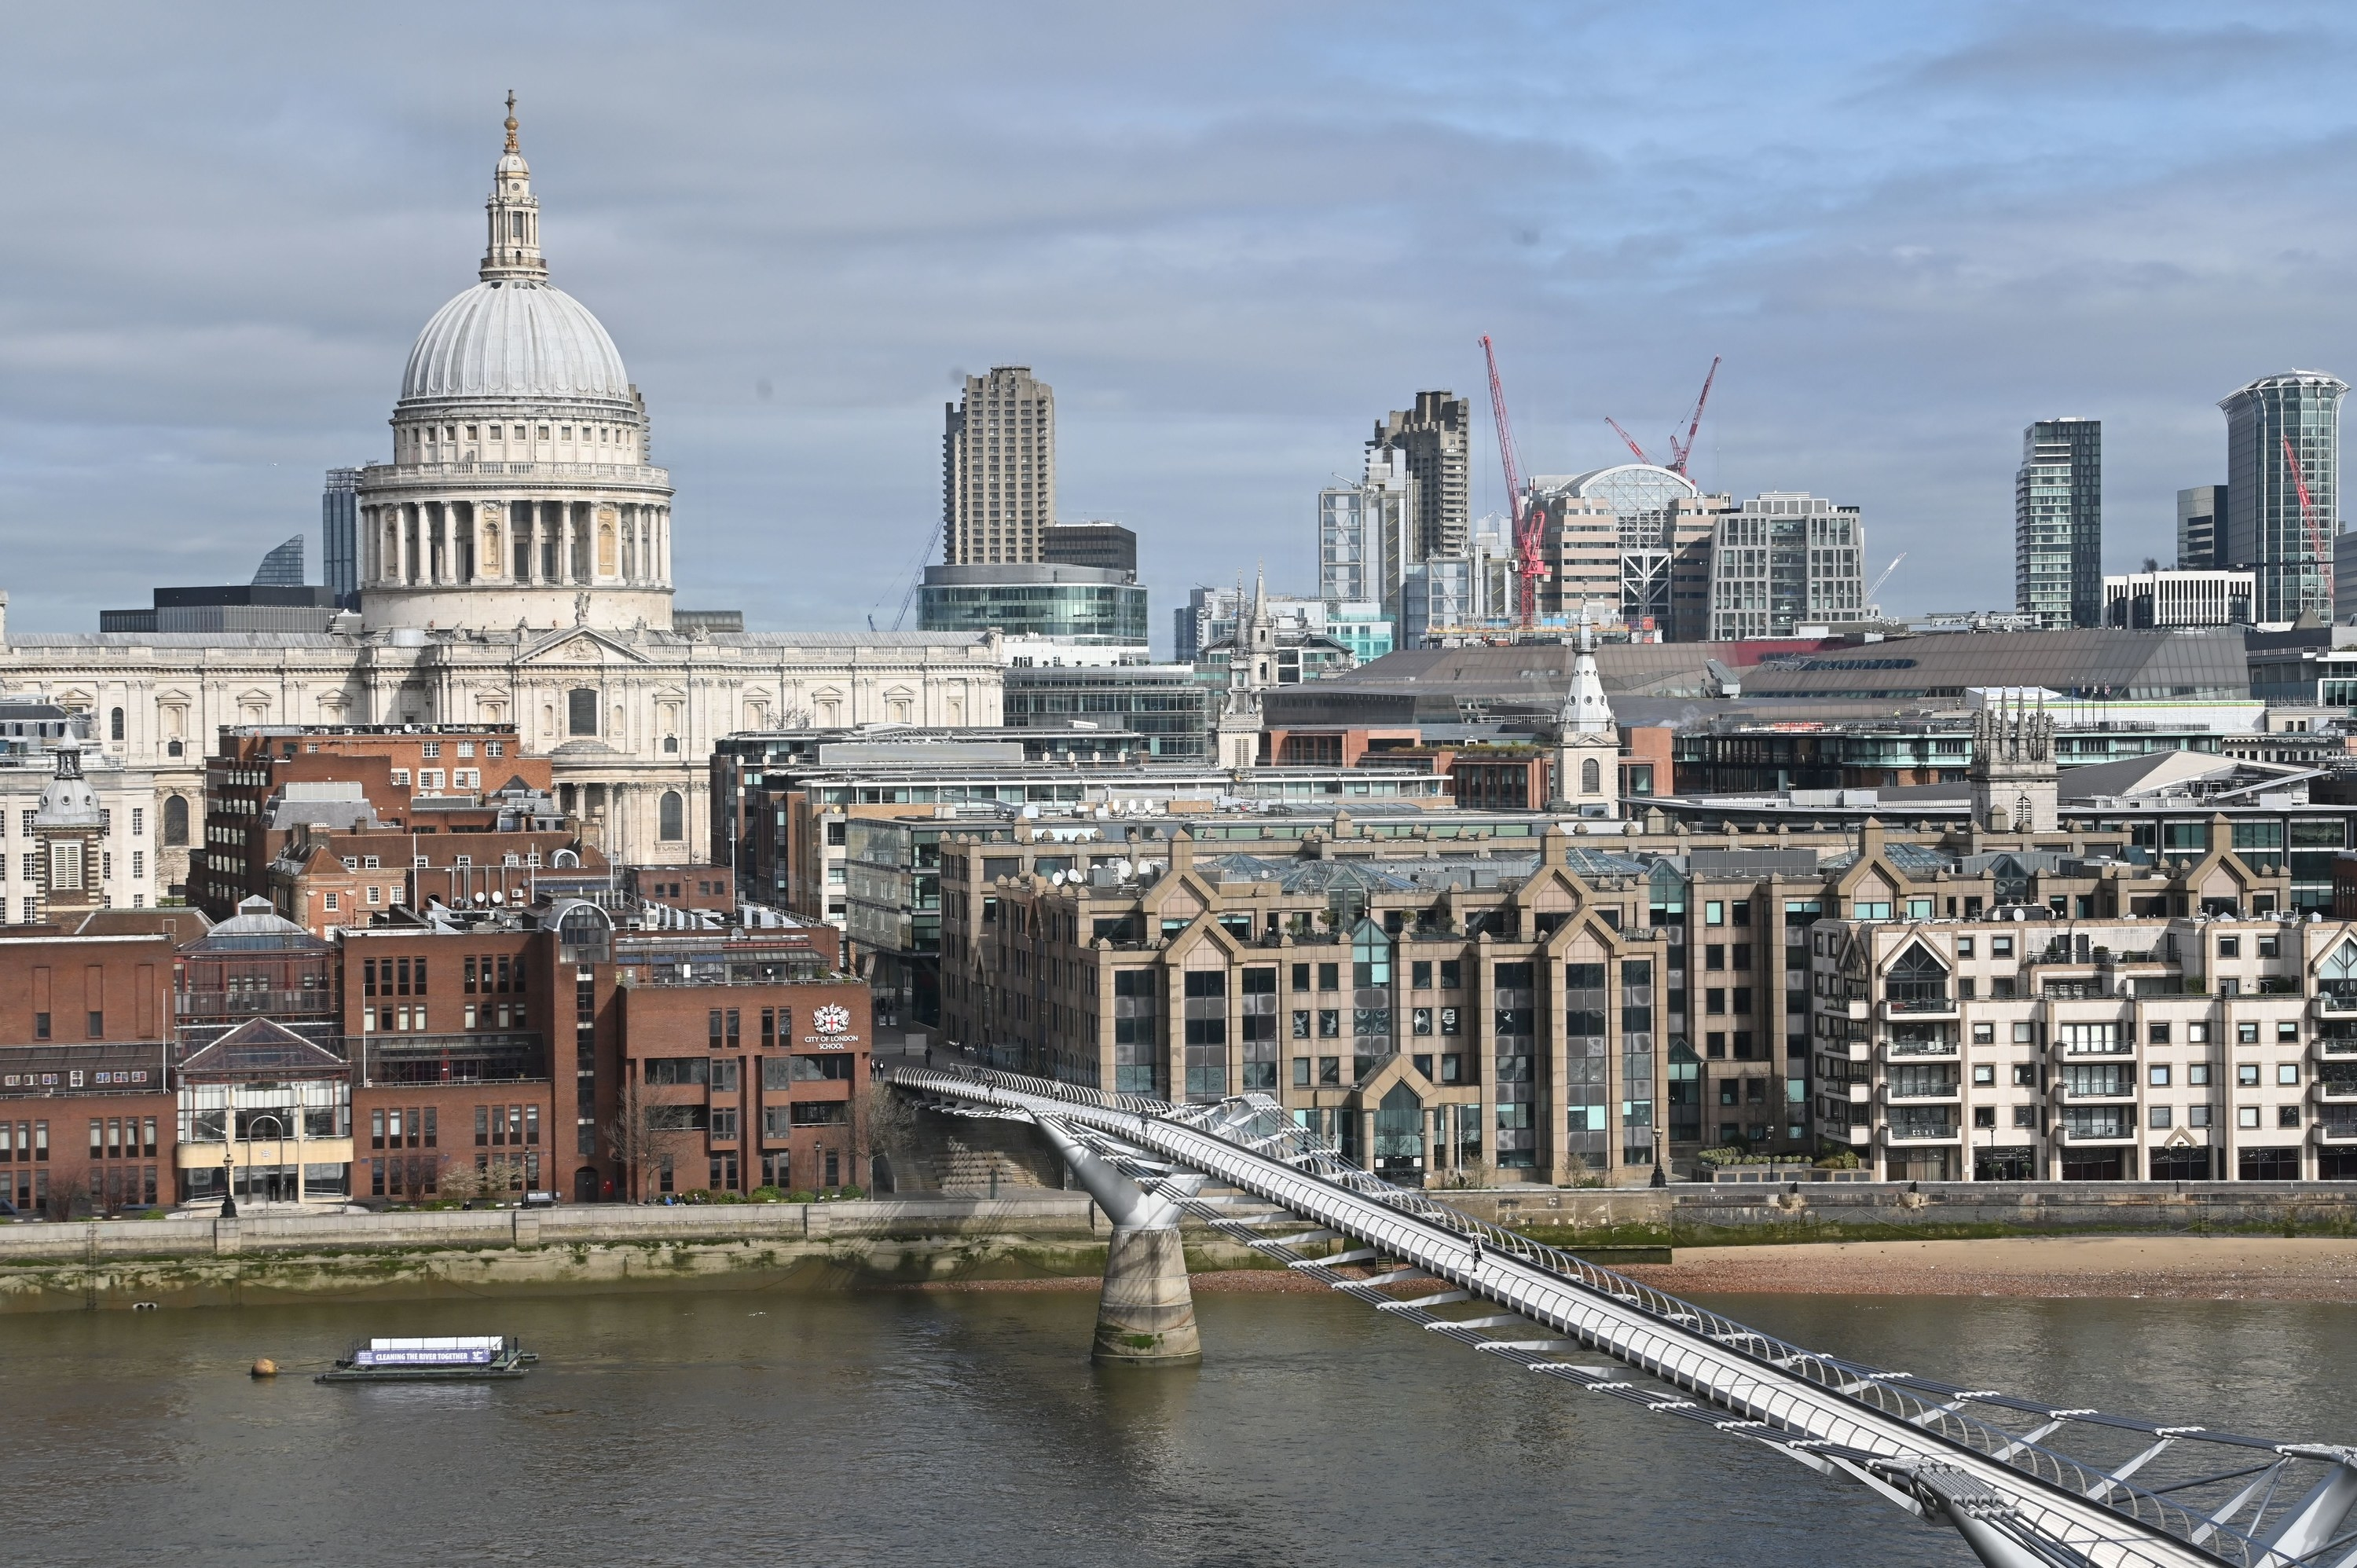 Pedestrians cross a quiet Millennium Footbridge across the River Thames in London in the mid-morning on March 17, 2020.